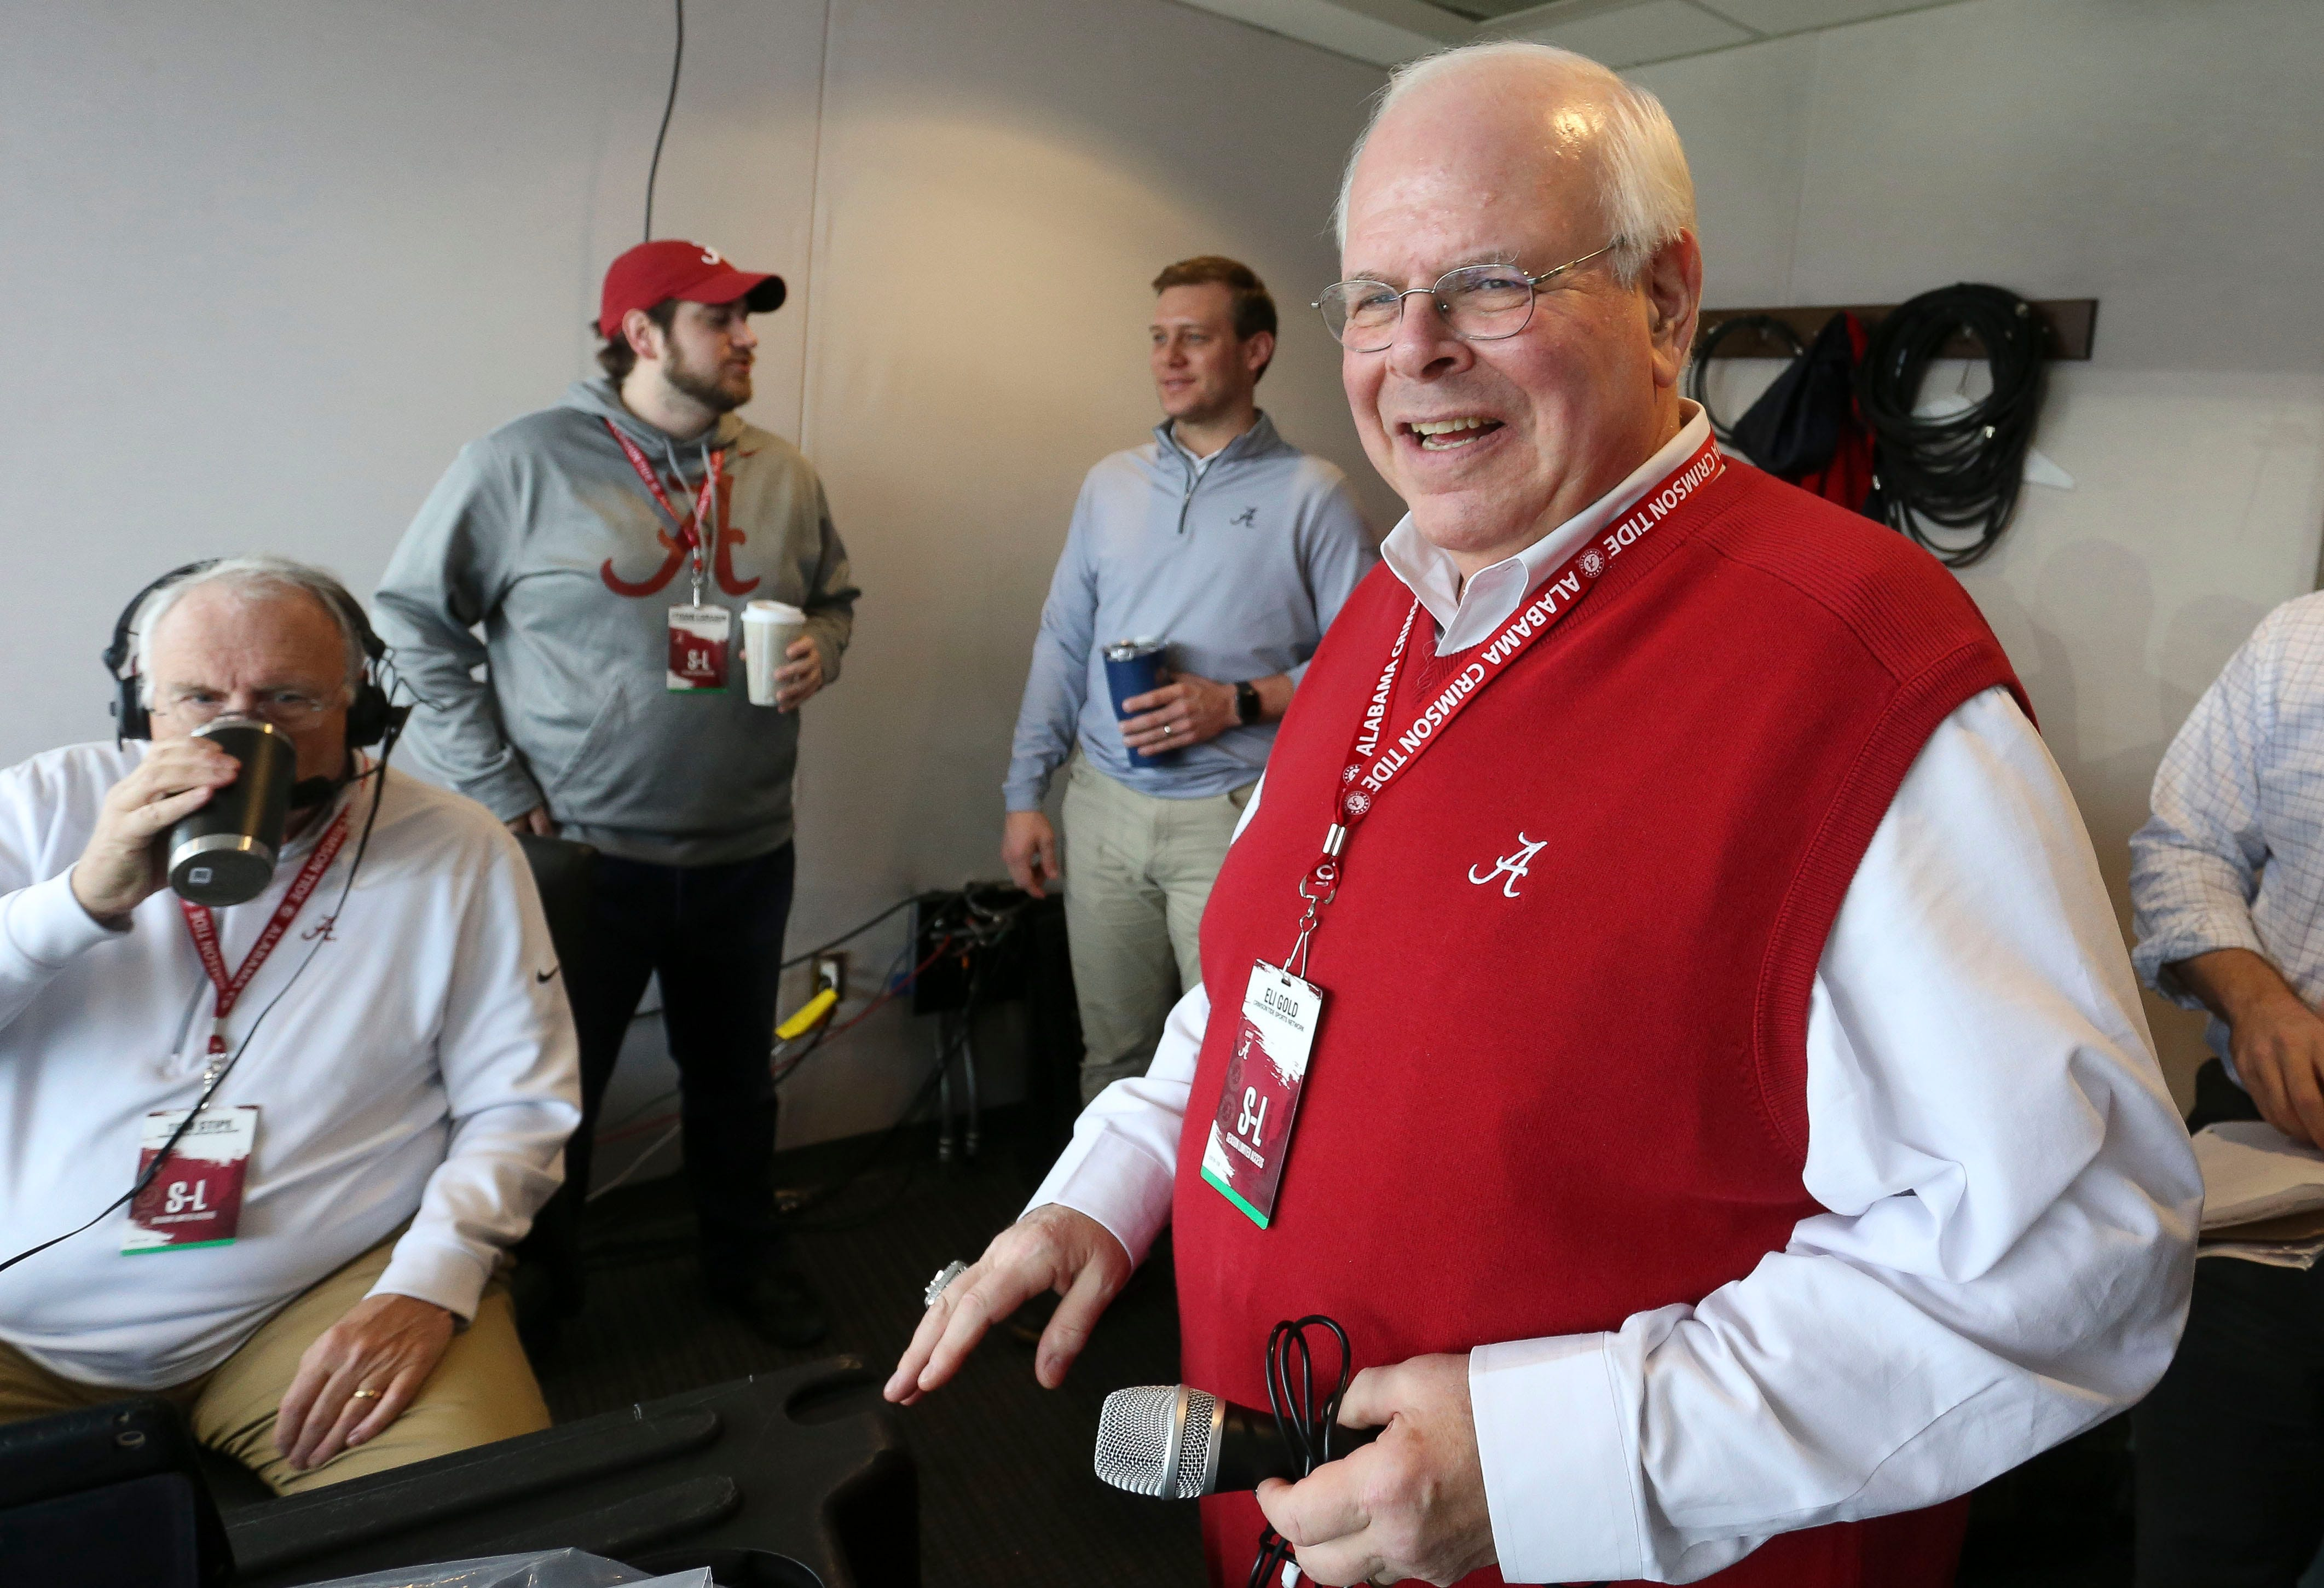 After positive COVID-19 test, Alabama announcer Eli Gold's streak in booth will end at 409 games